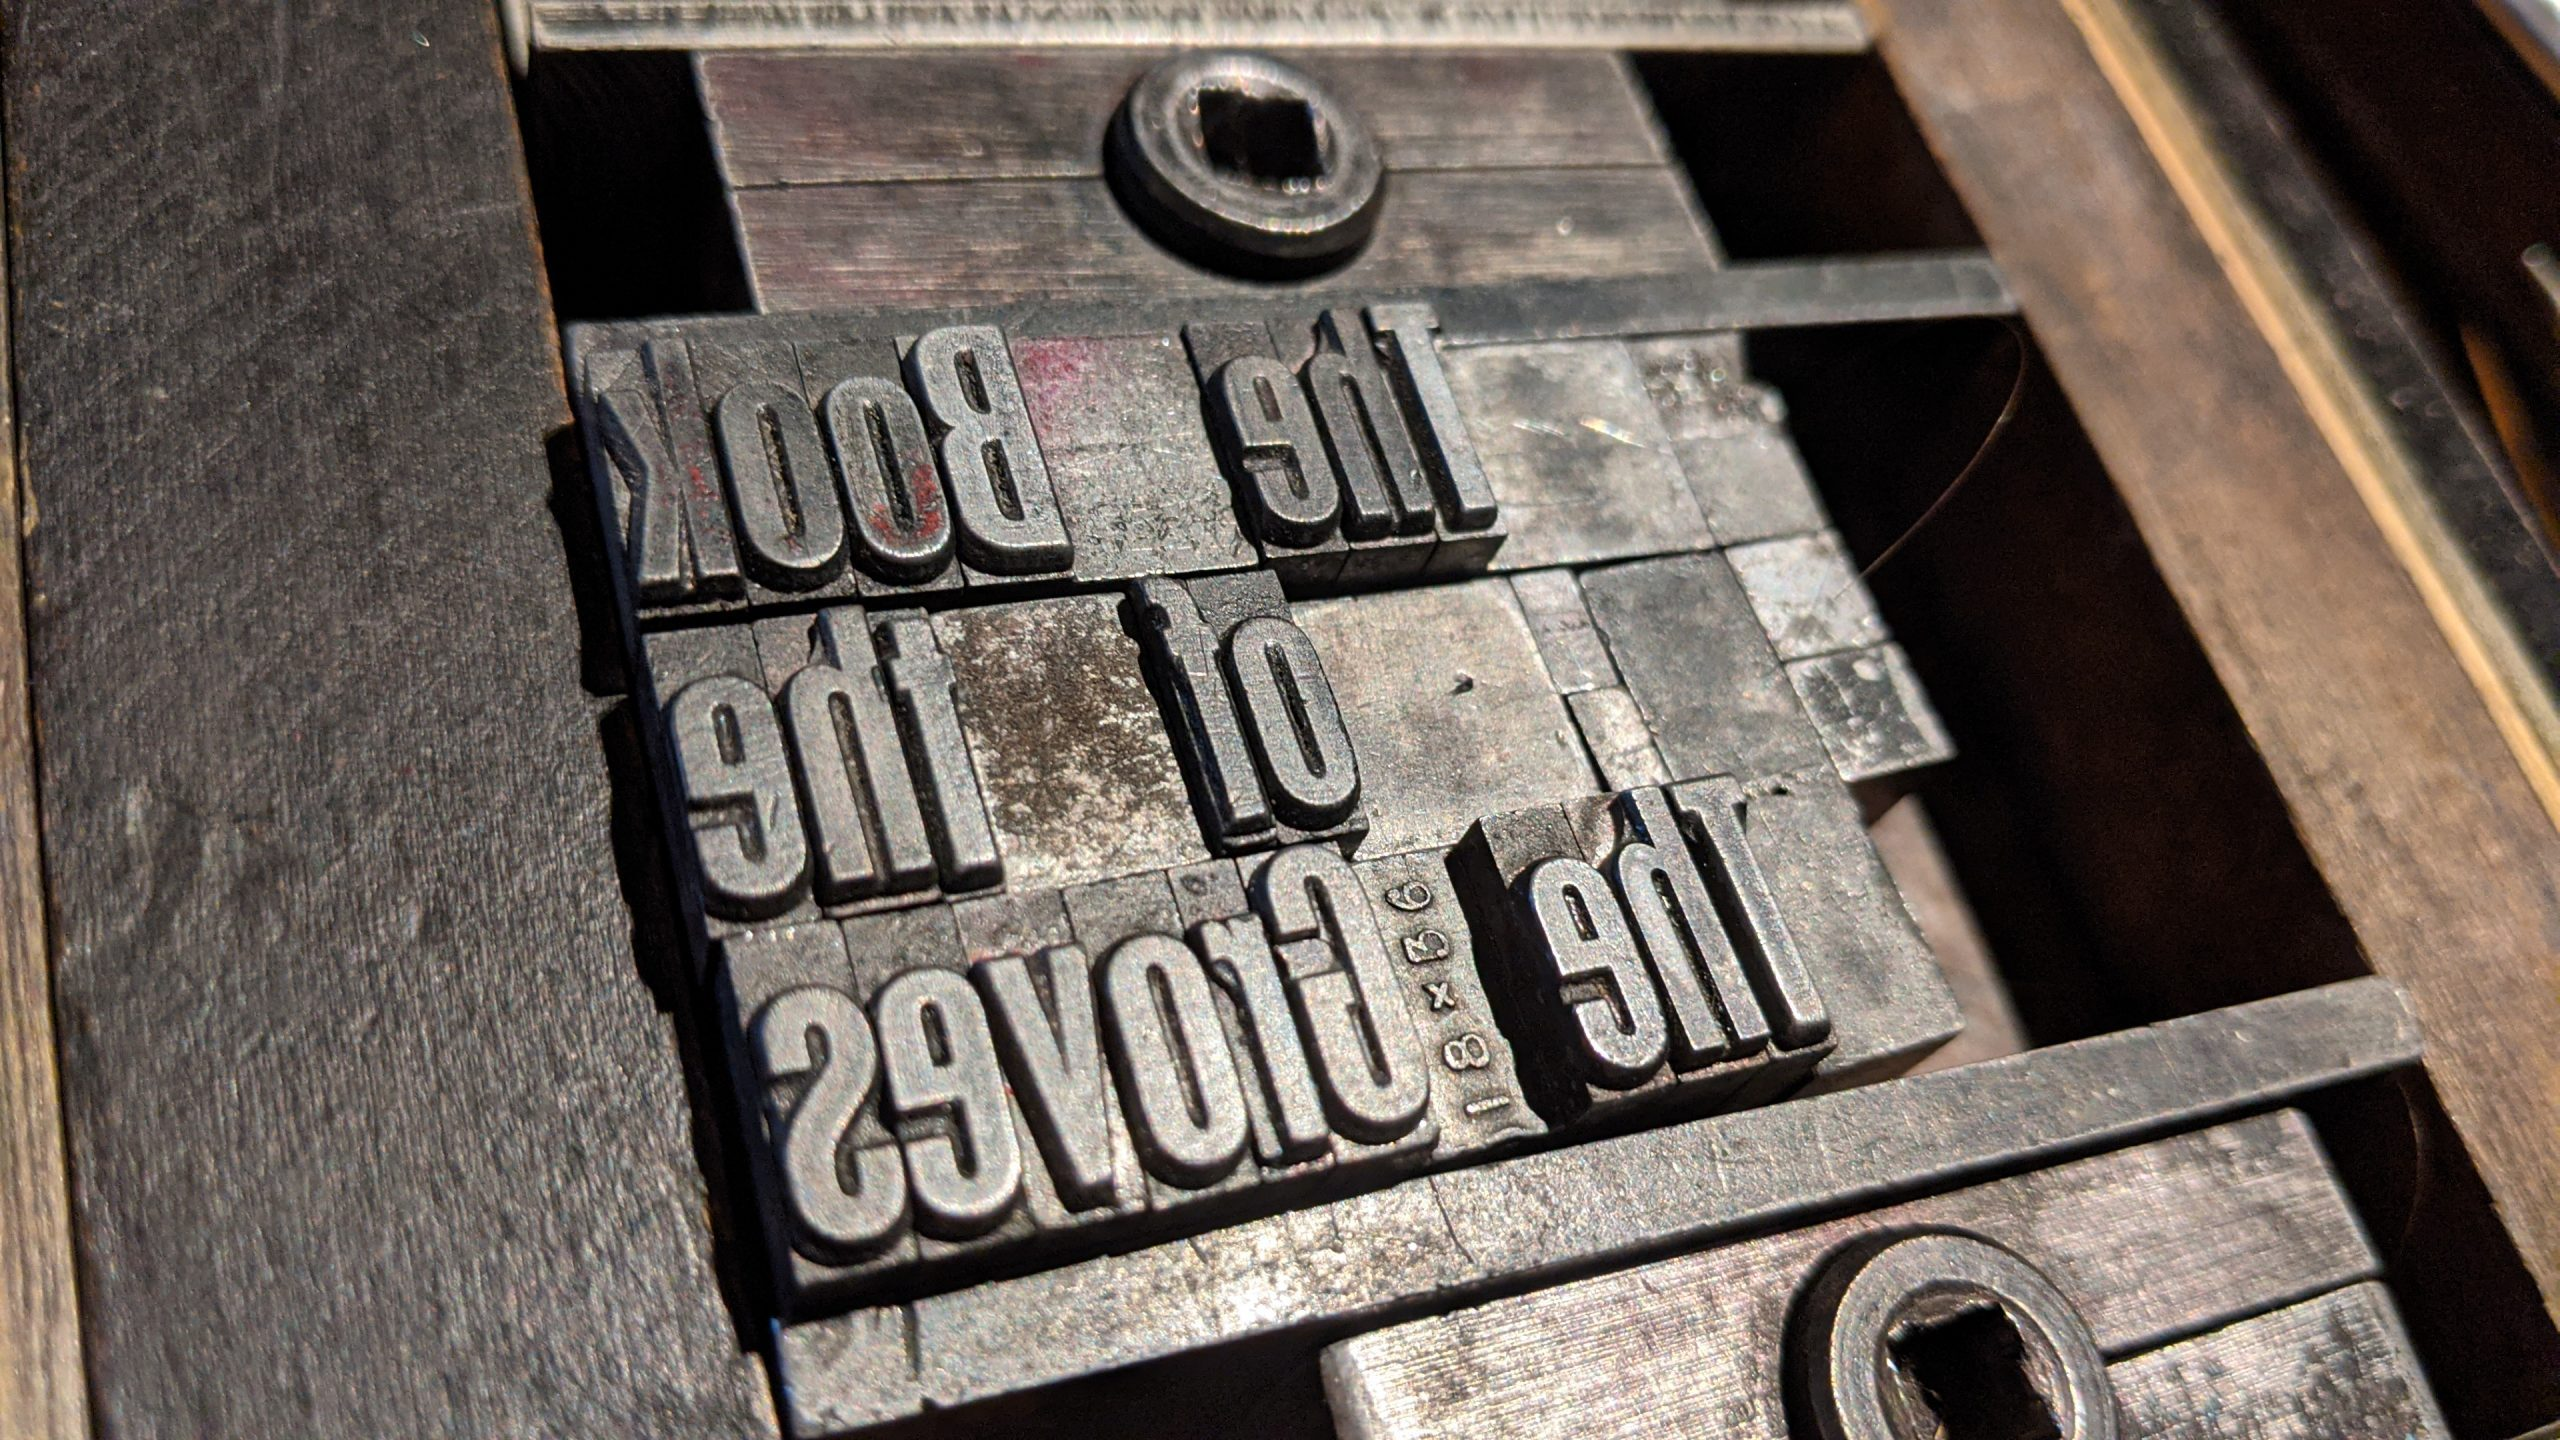 Image of a printing forme with letterpress type spelling out The Book Of the Groves